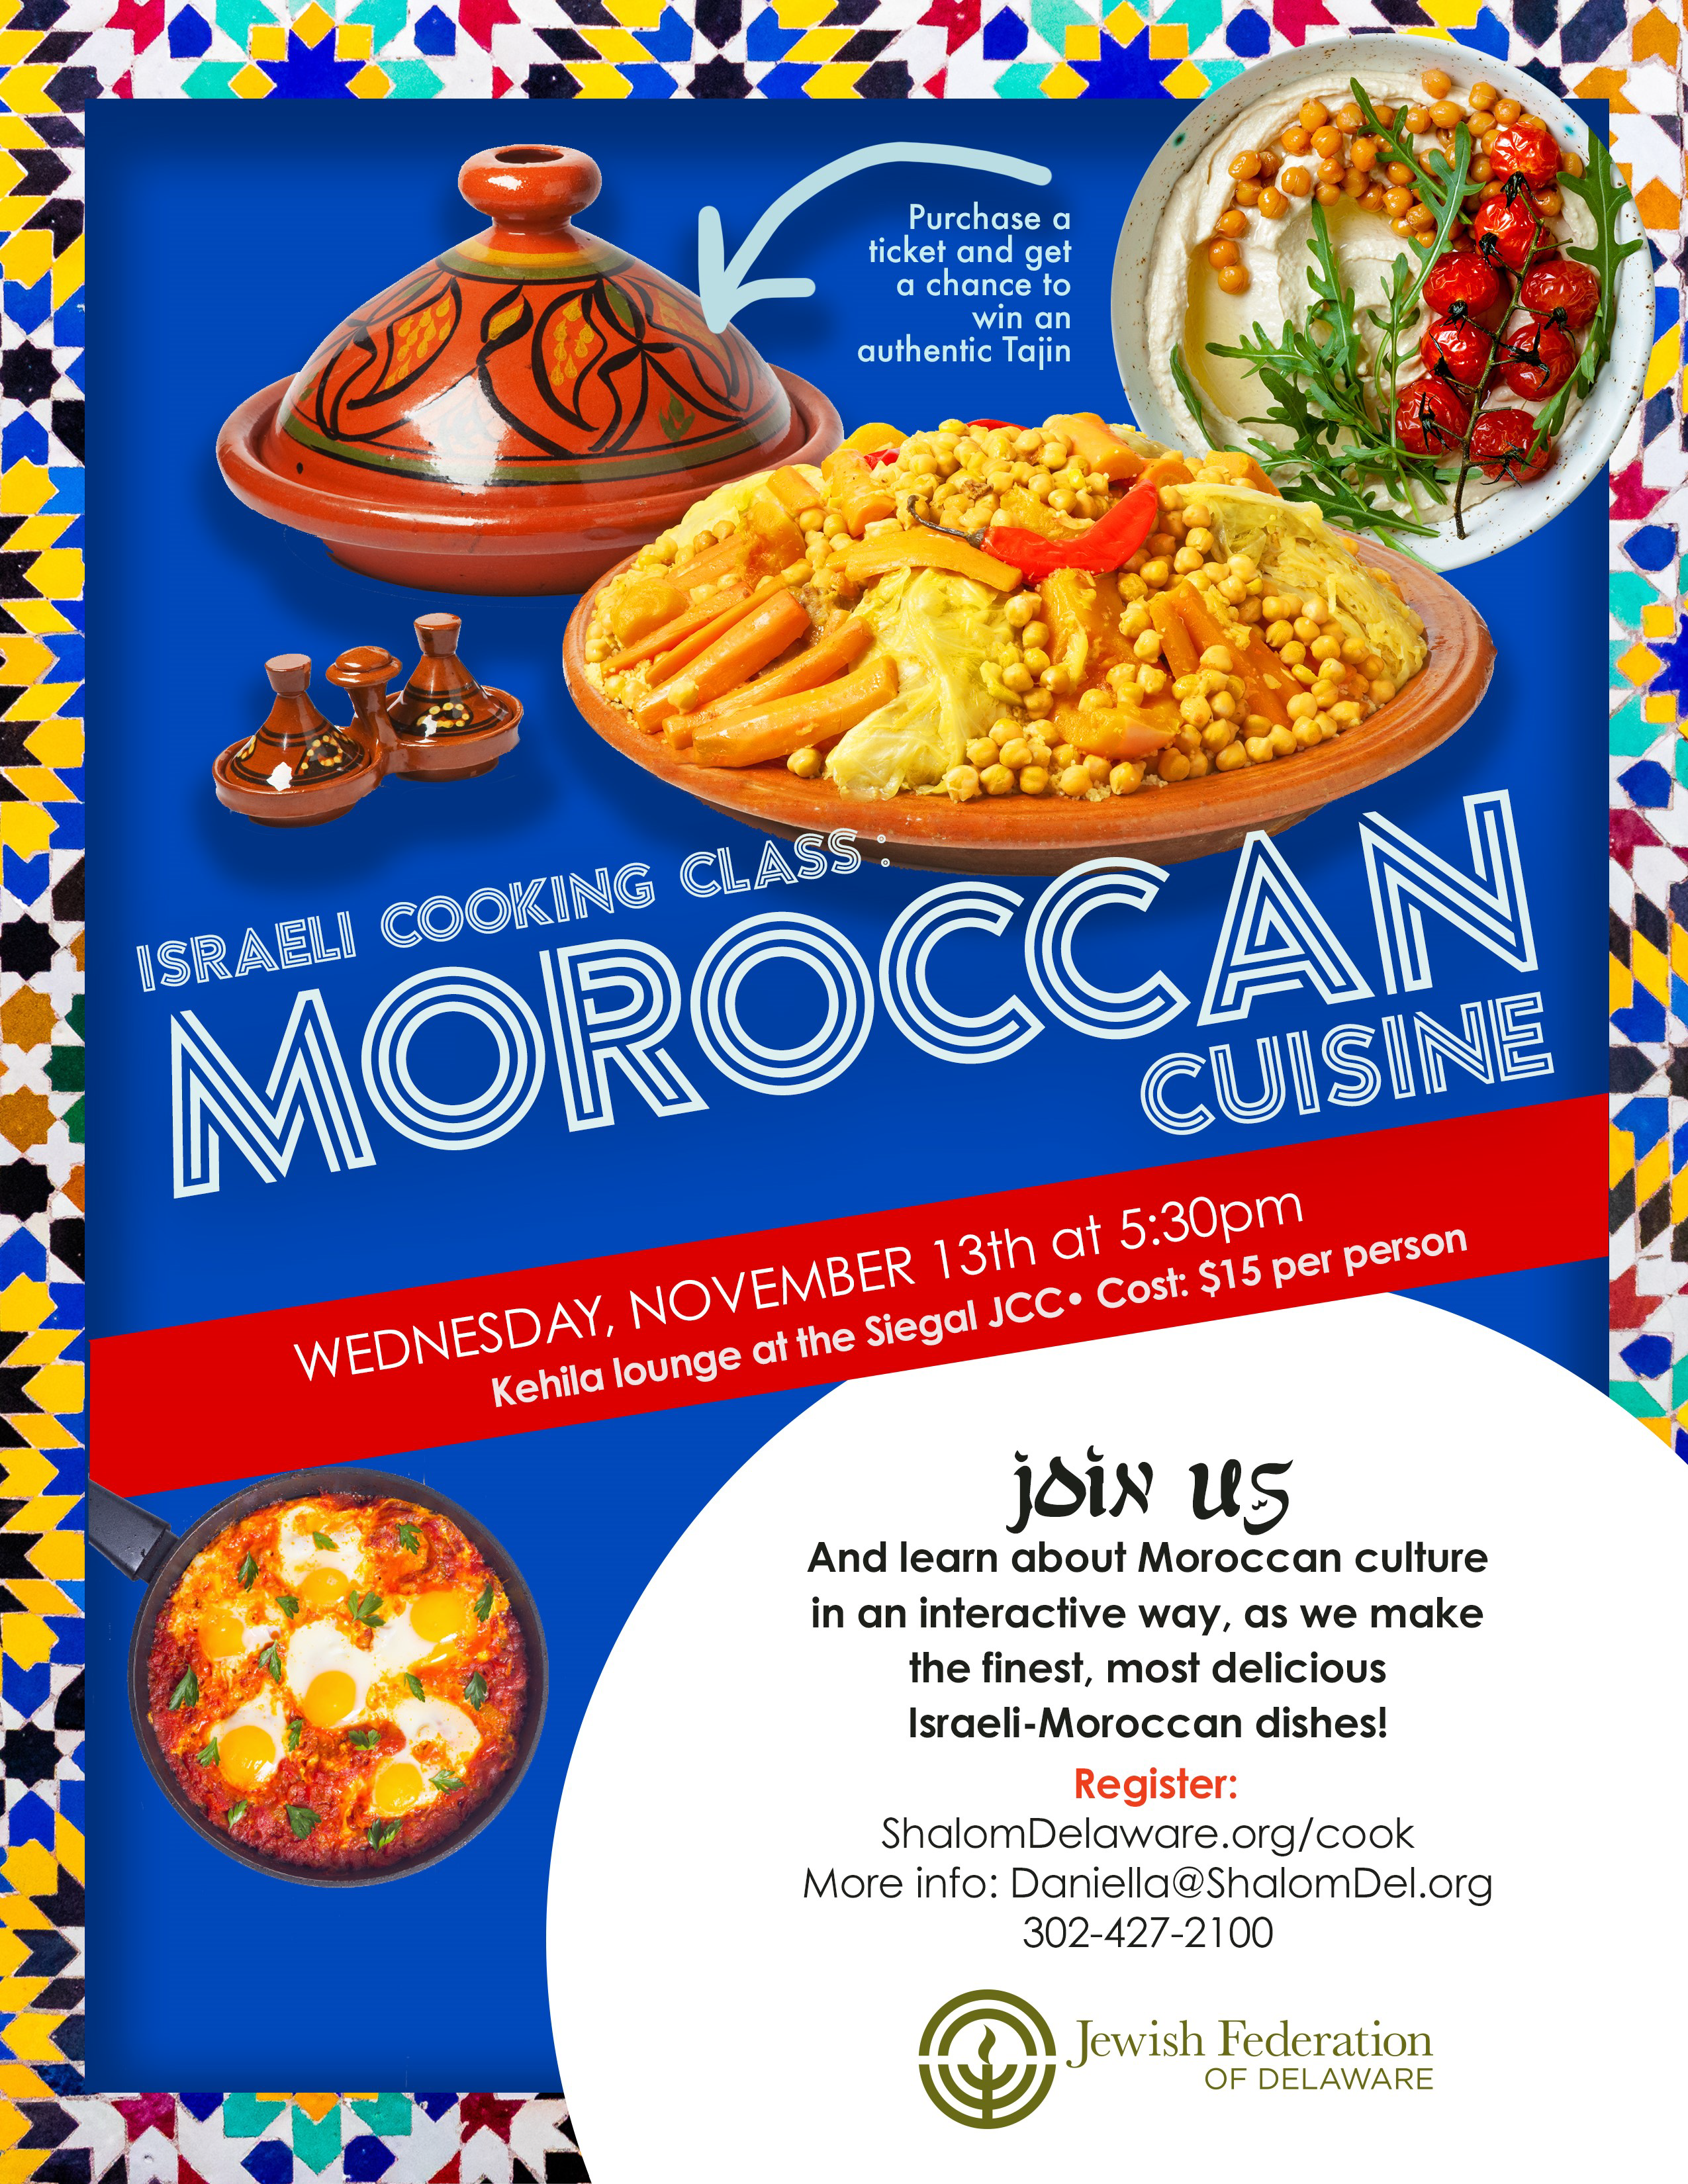 Israel and overseas cooking class: Moroccan cuisine and culture